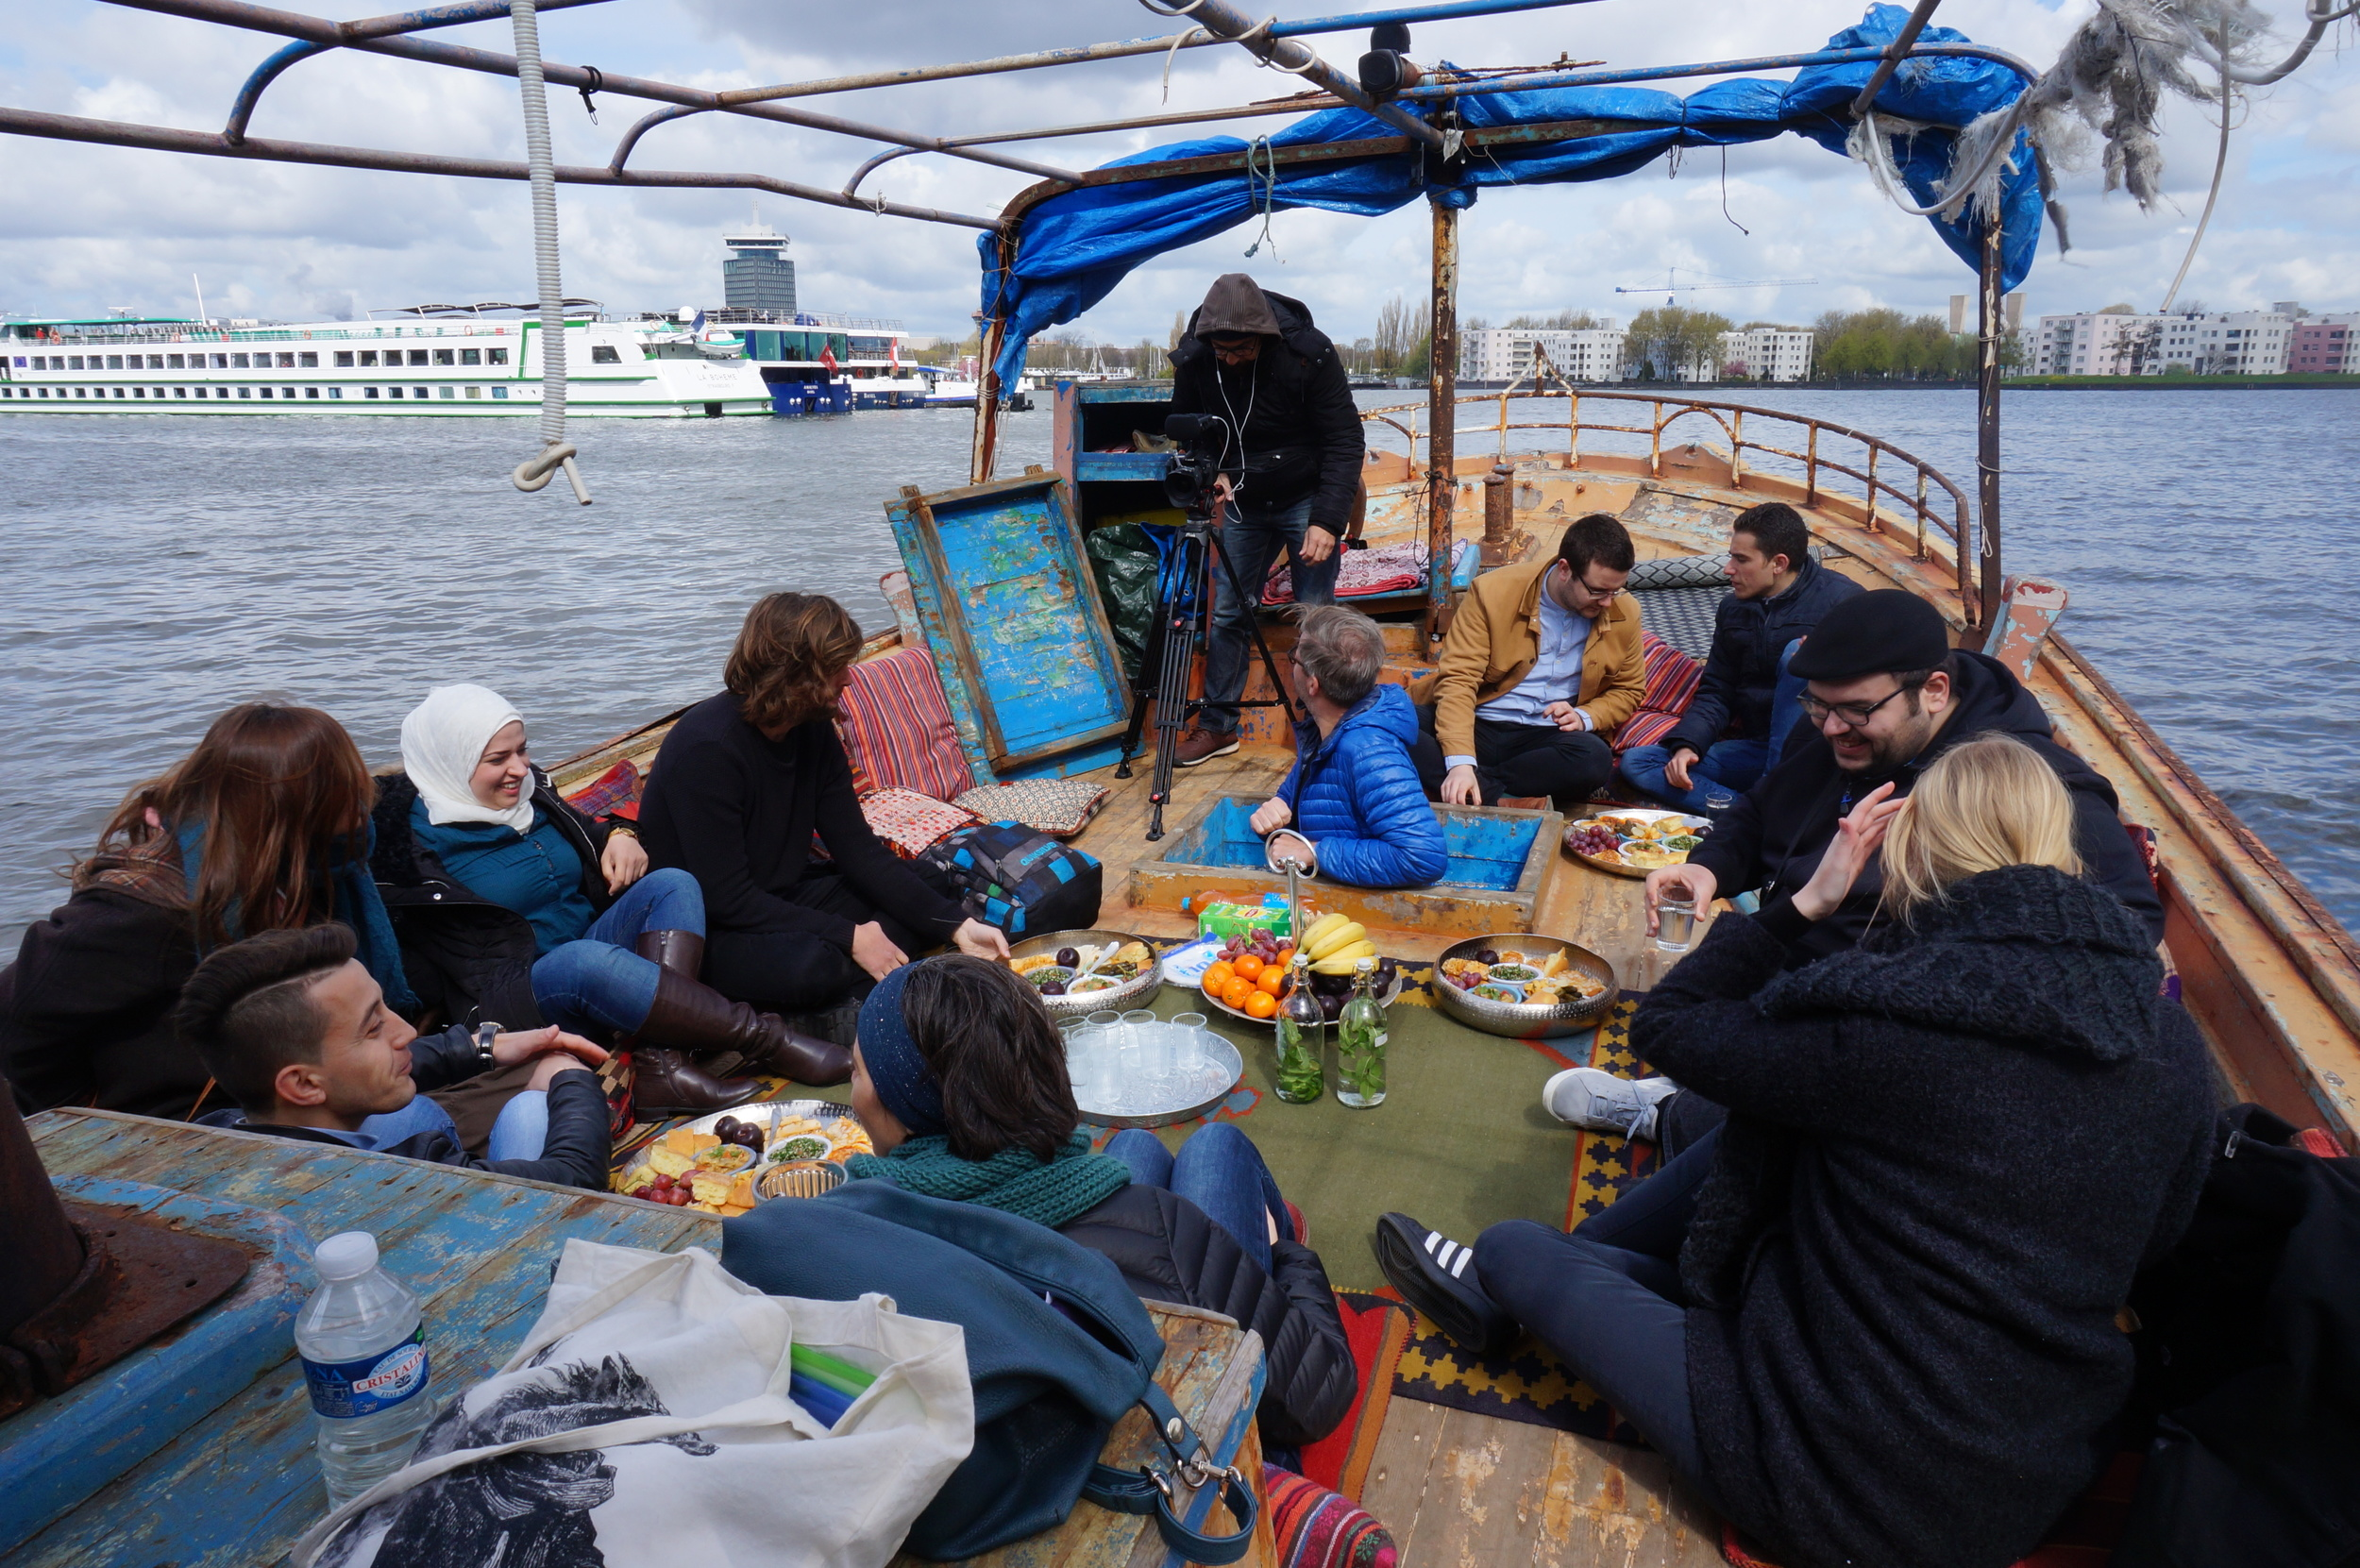 On board of Mr. Friday sailing on Amsterdam waters //April 30, 2016